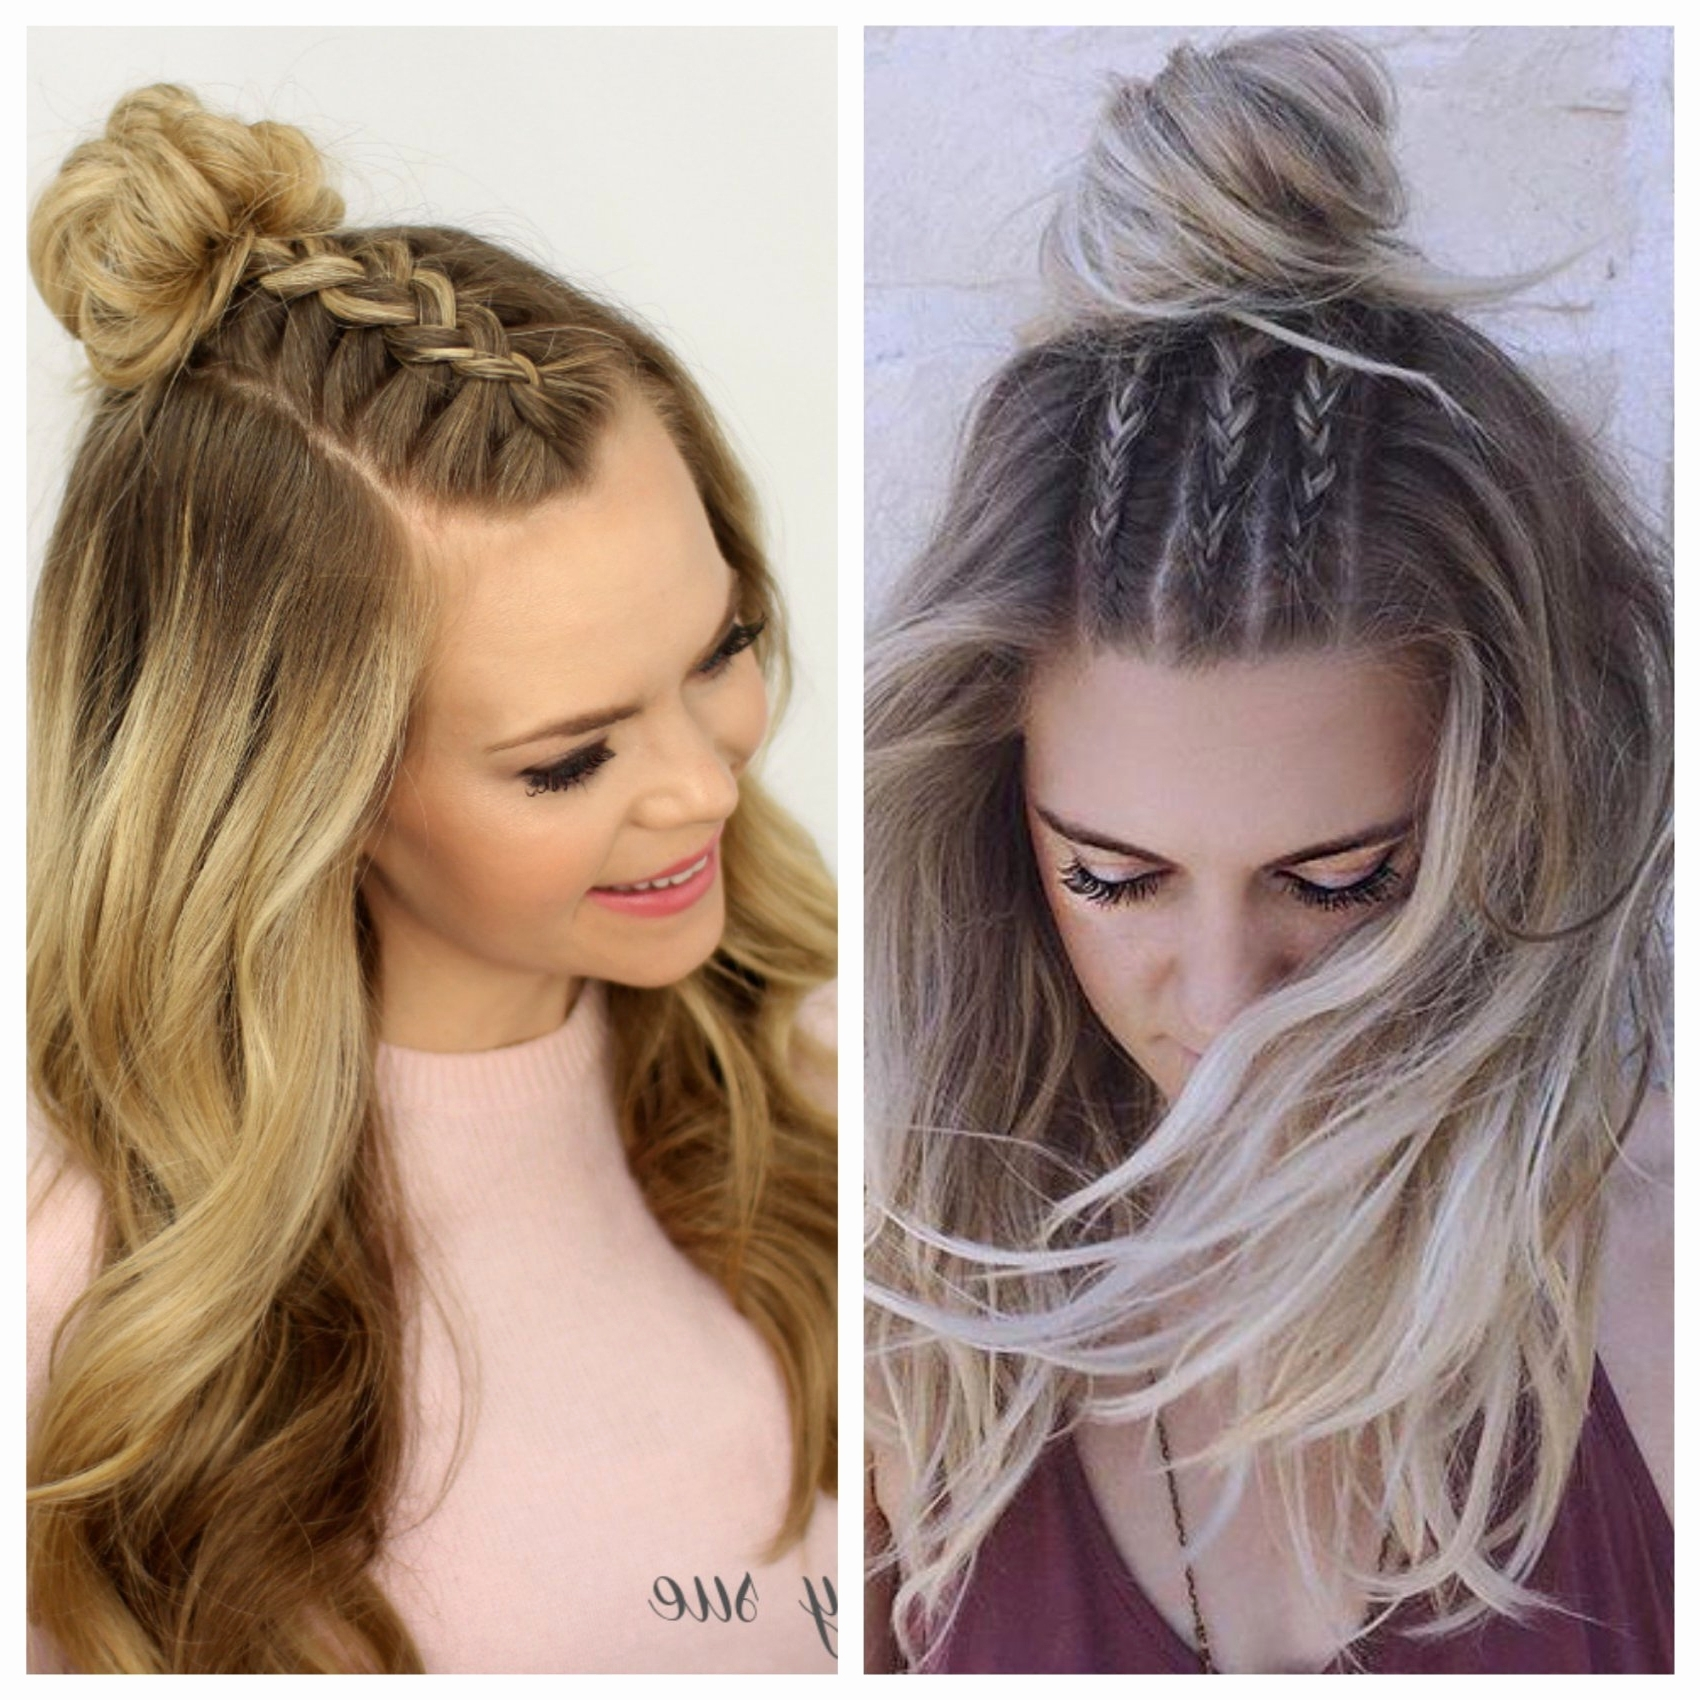 Simple Half Up Half Down Hairstyles Straight Hair Inspirational Half Within Straight Half Updo Hairstyles (View 10 of 15)